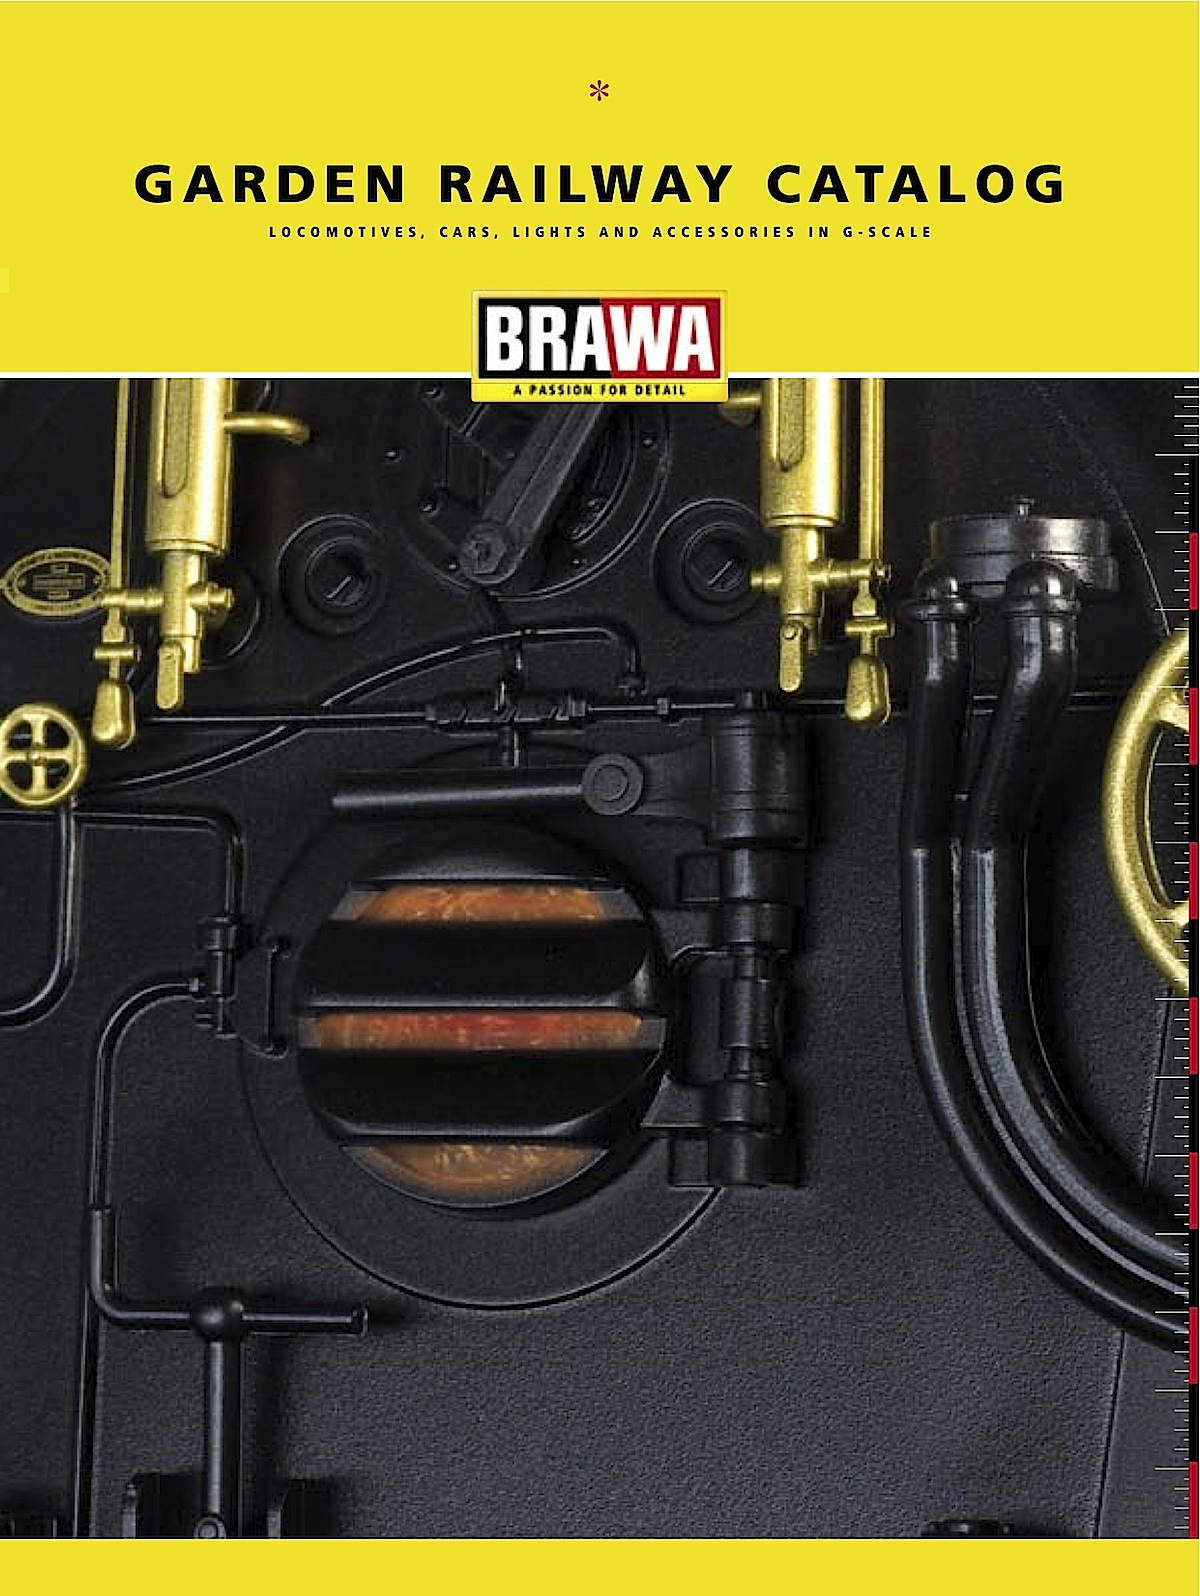 Brawa Katalog (Catalogue) 2007 in English